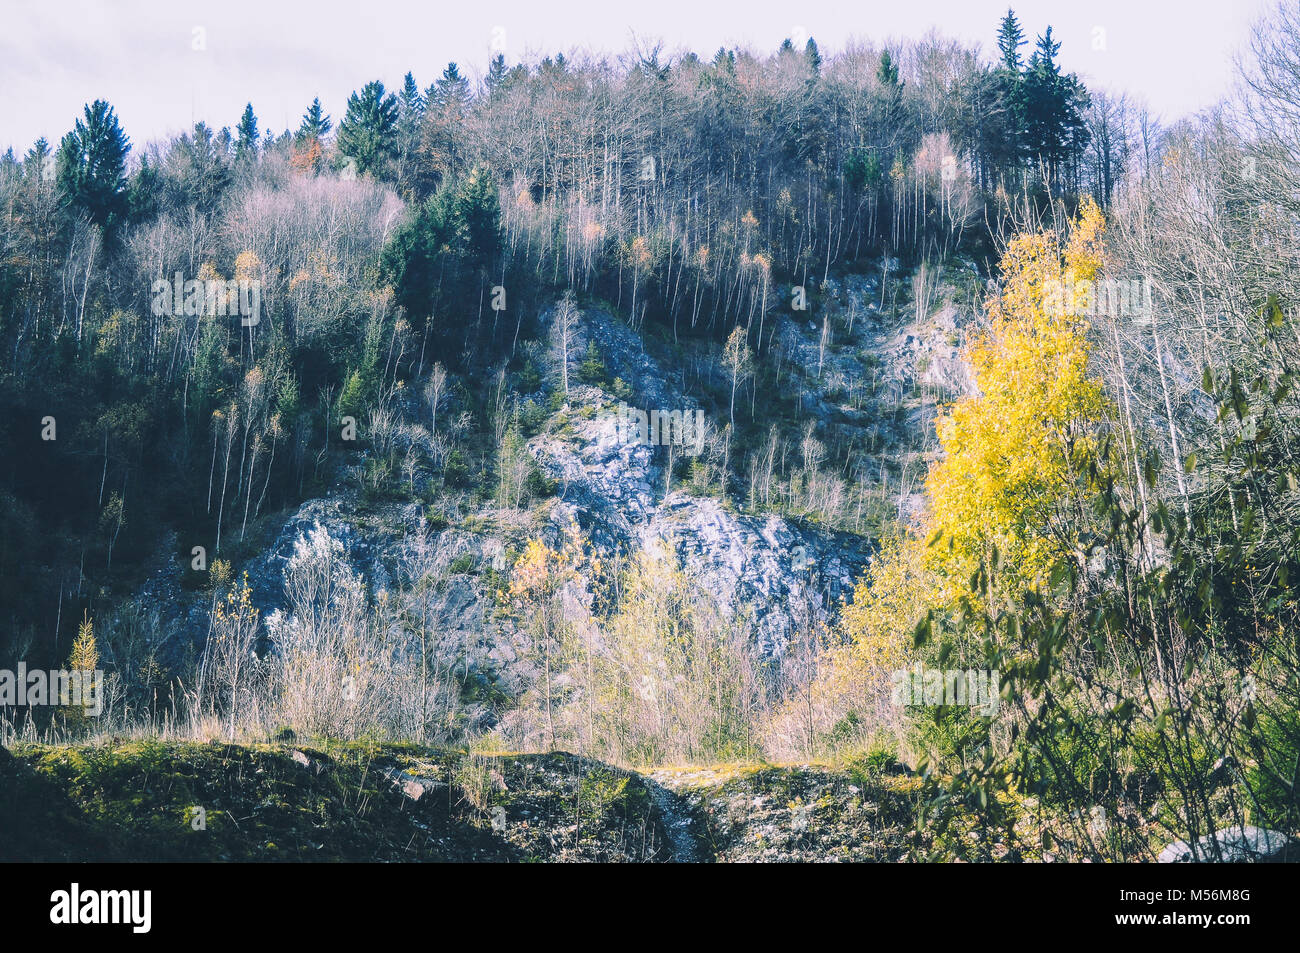 View from the bottom to the hills top. Curved lines and colorful trees in the autumn II - Stock Image